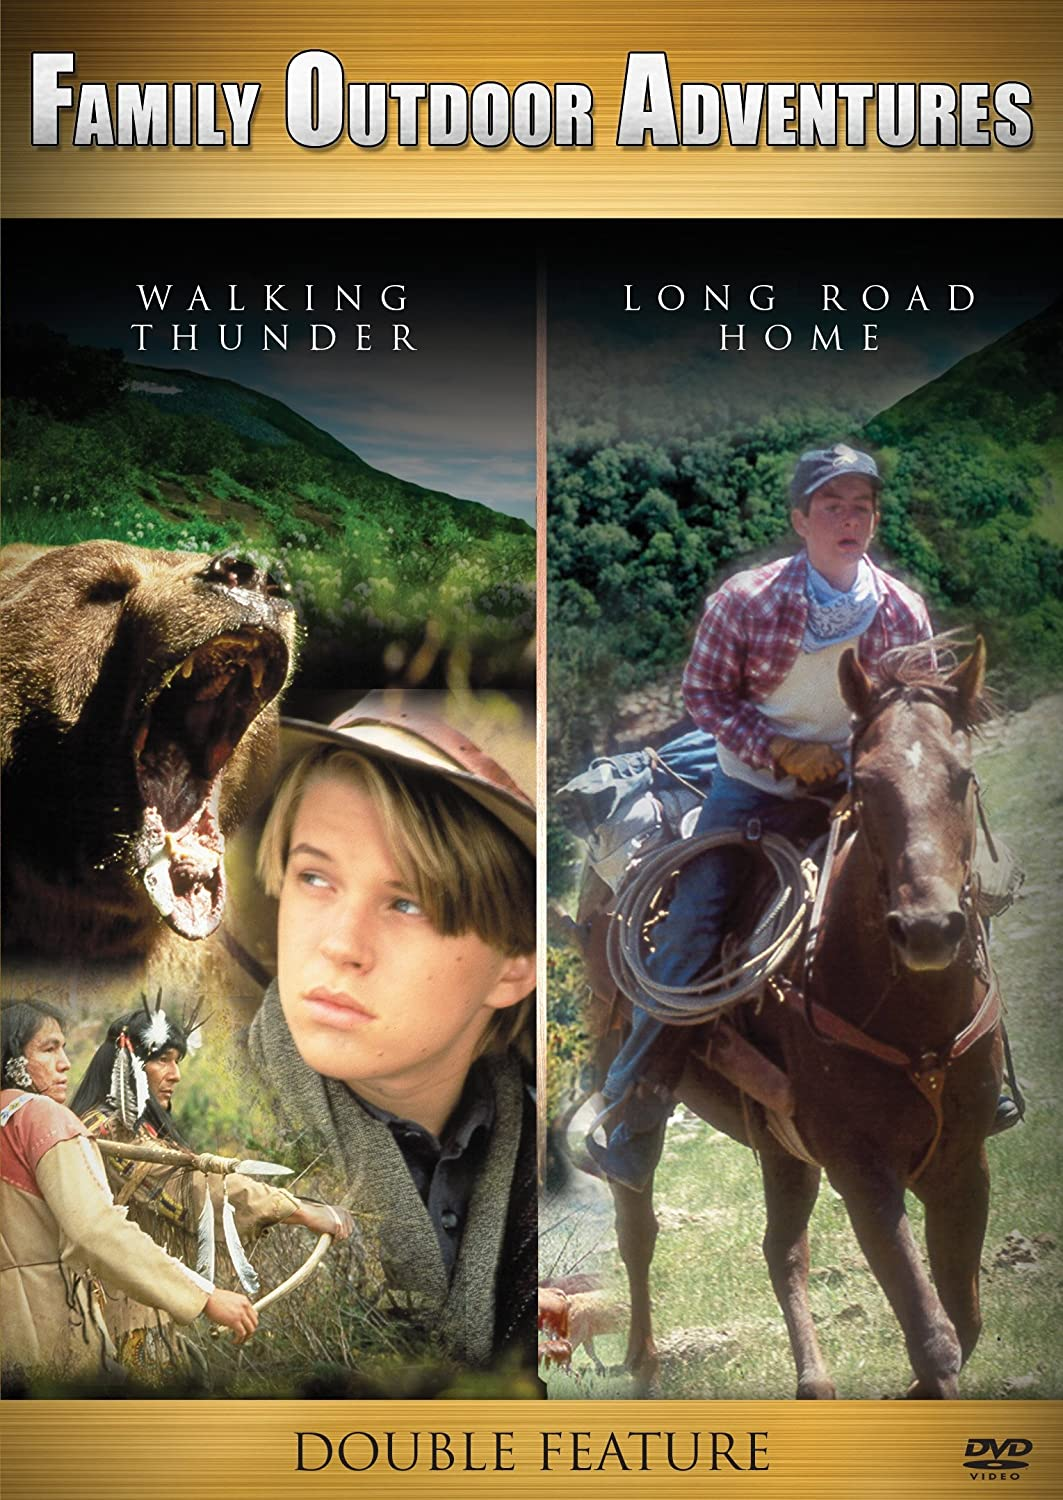 Walking Thunder/long Road Home double-feature